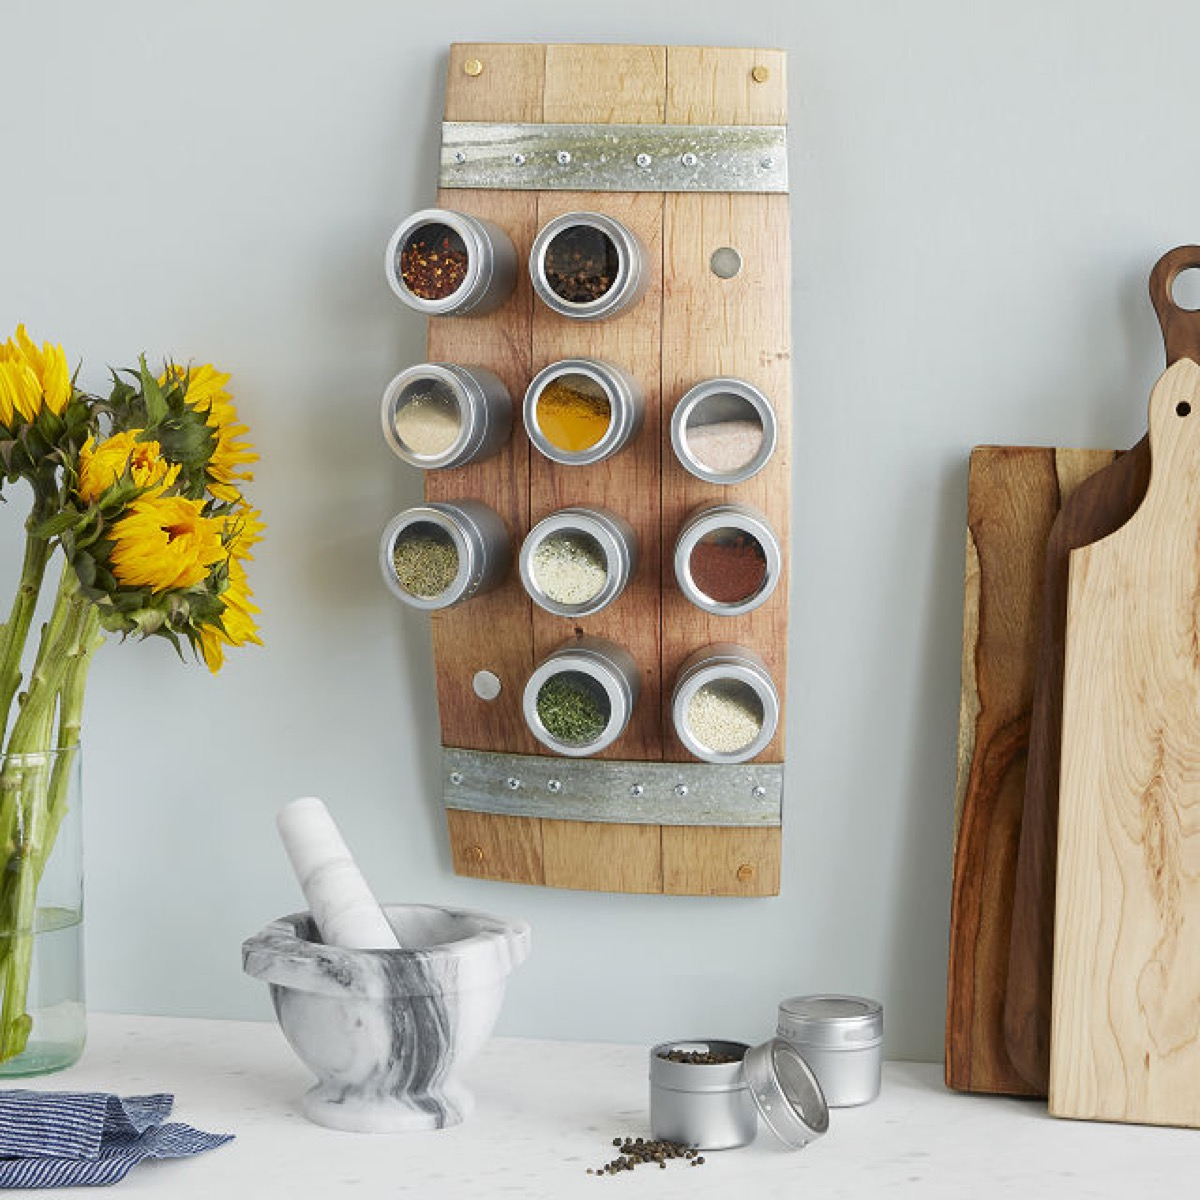 magnetic wooden spice rack next to yellow flowers, kitchen decorations